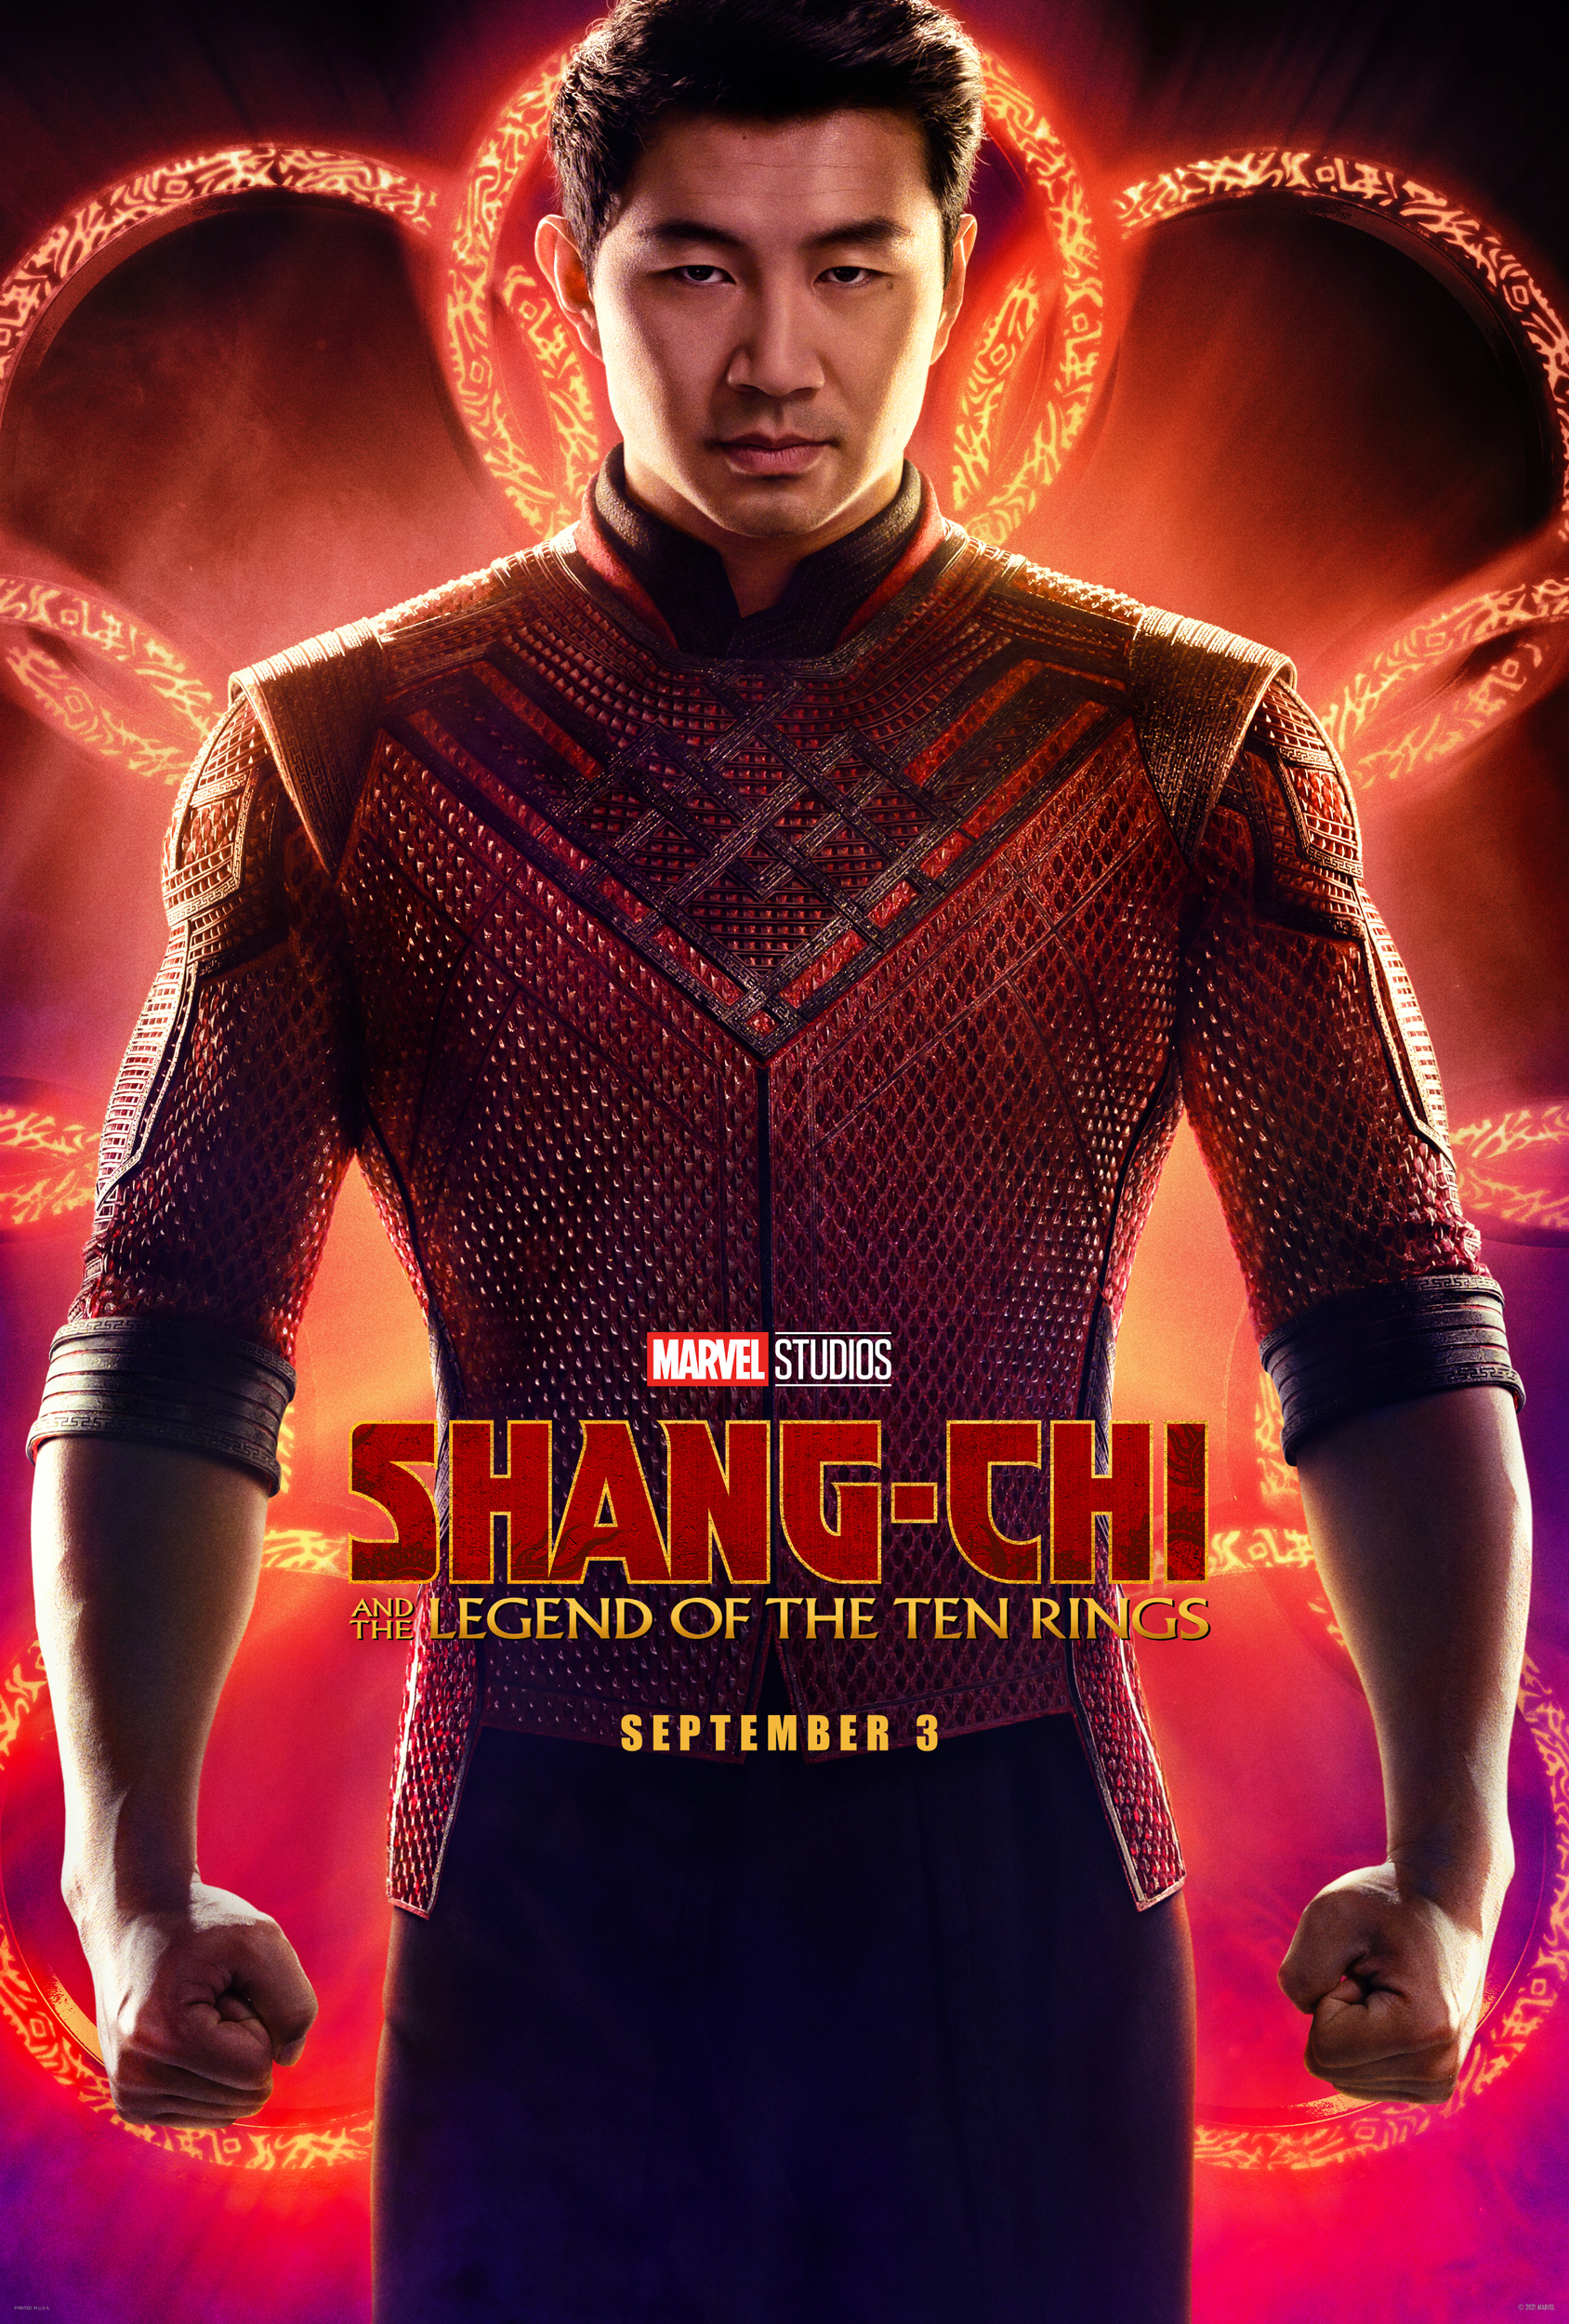 Shang-Chi and the Legend of the Ten Rings......will Marvel fans love it or leave it?